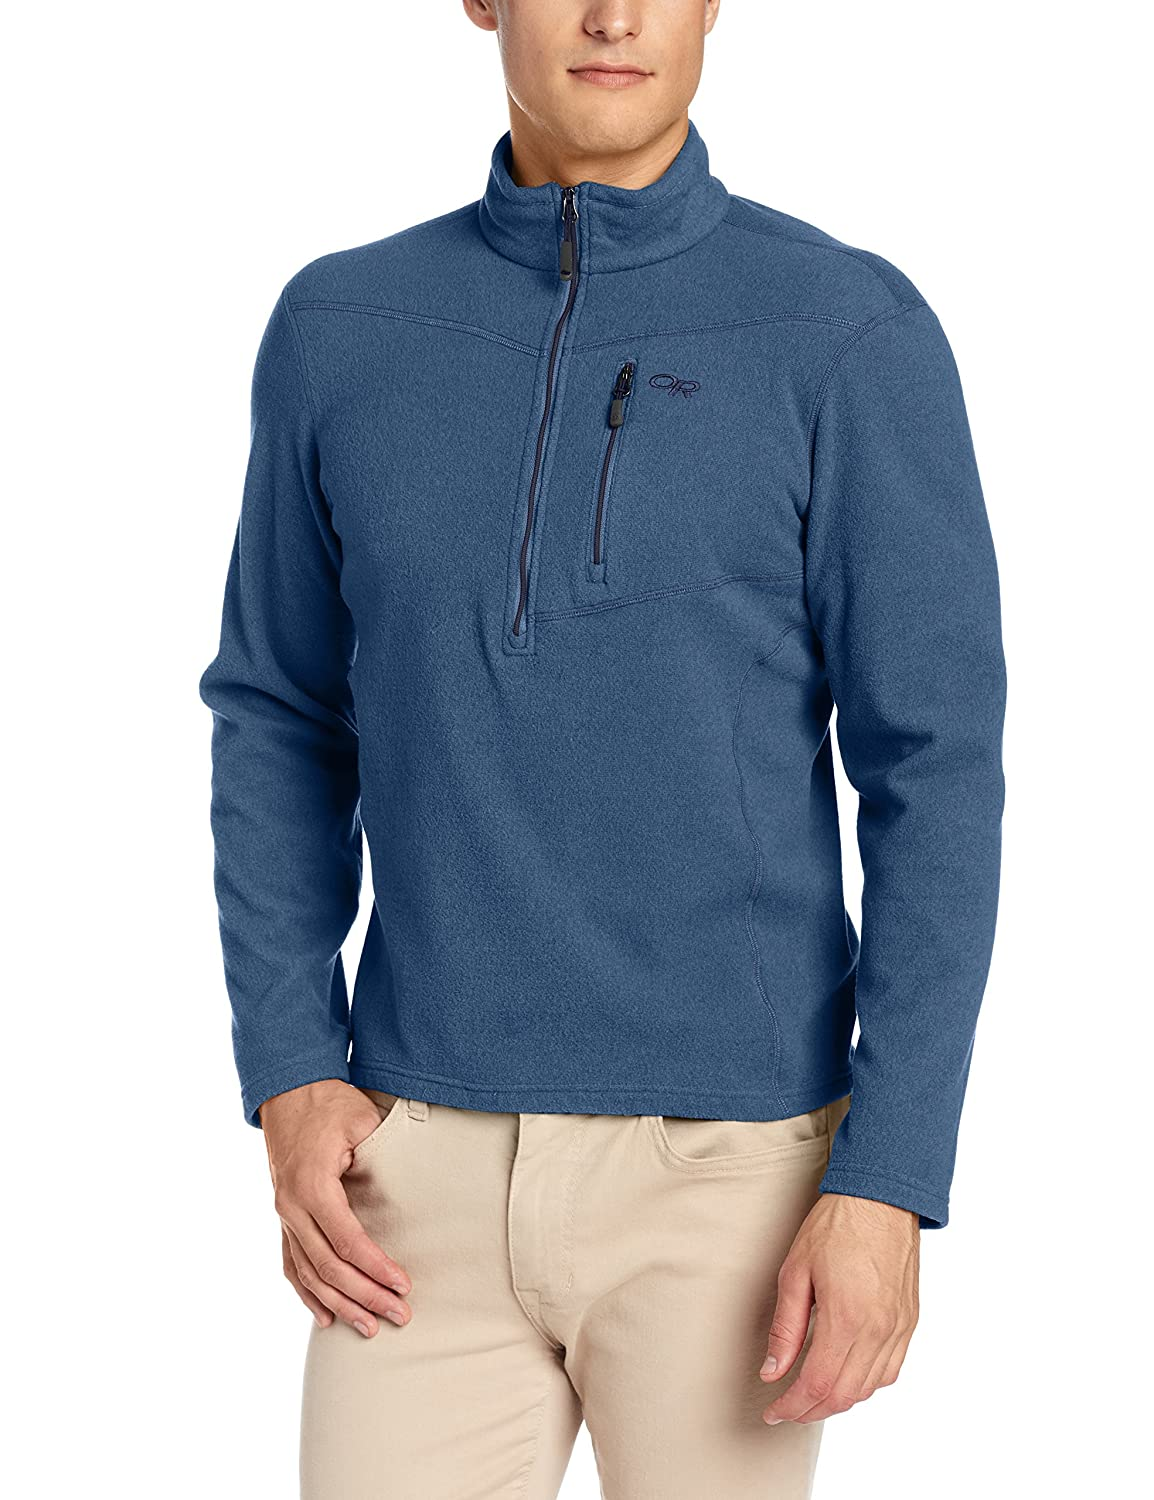 Outdoor Research Soleil Pullover 50985-890